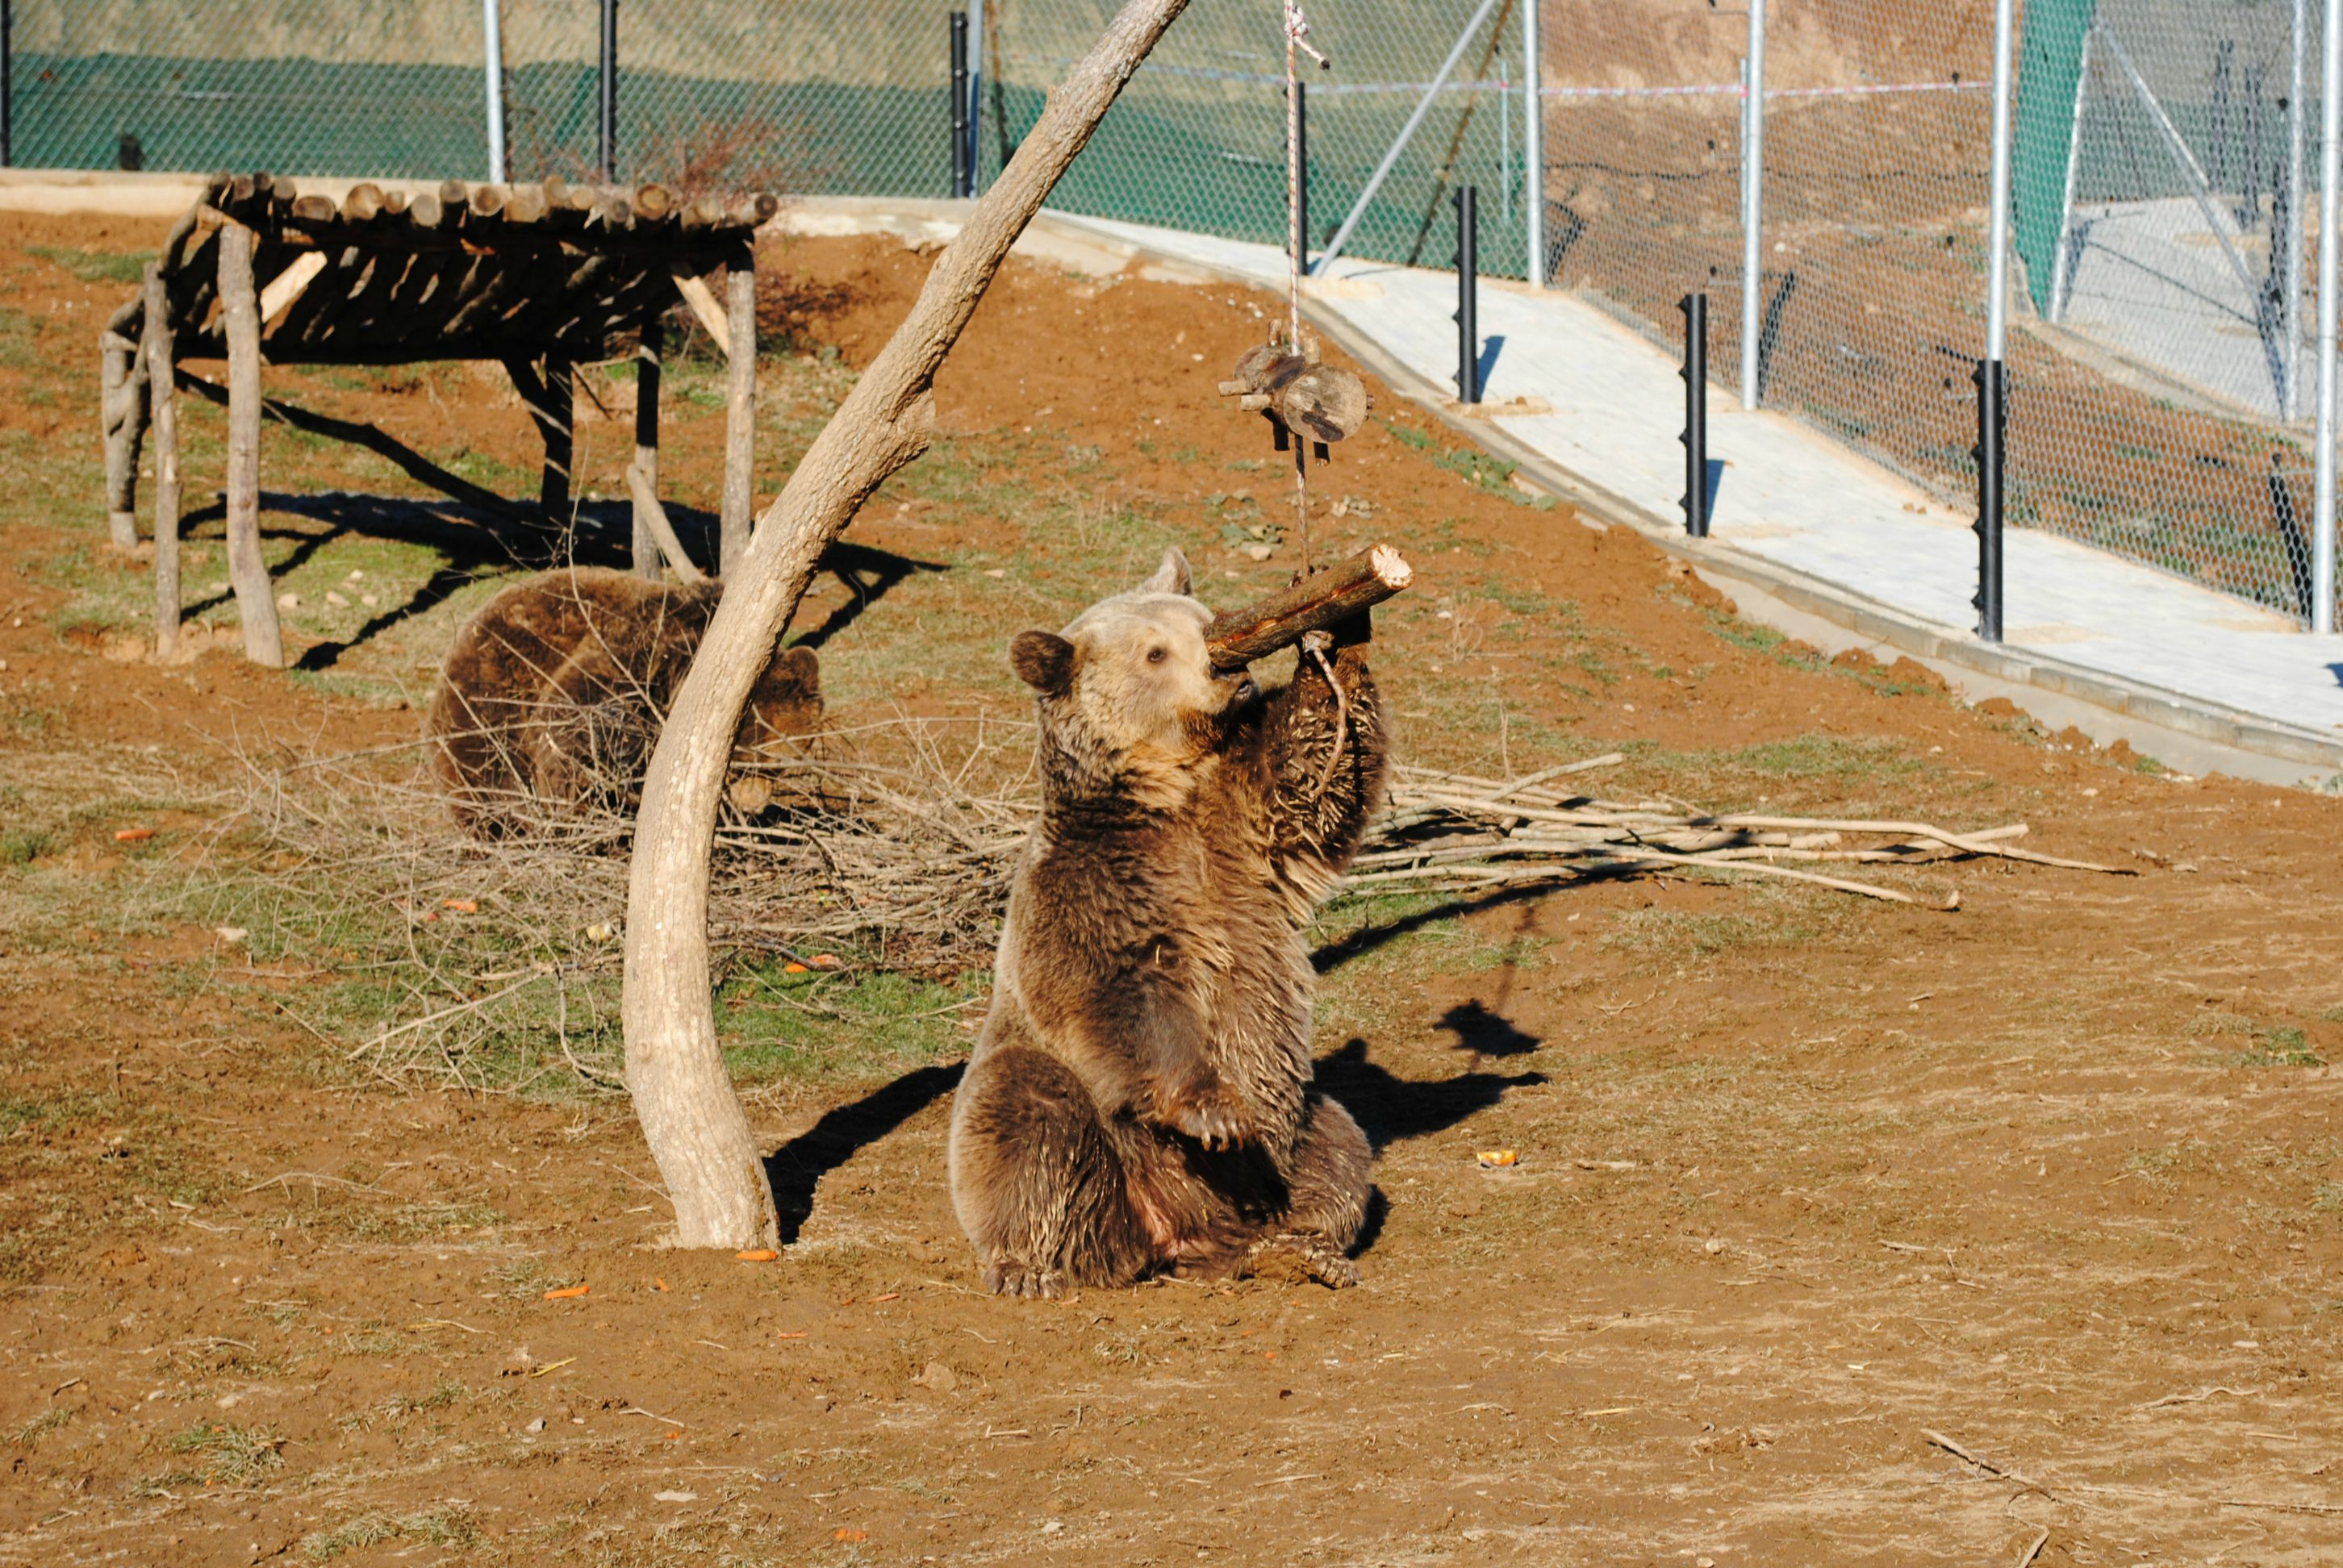 Someone took a cute photo of a bear playing with a piece of wood. Redditors photoshopped it into Internet history.